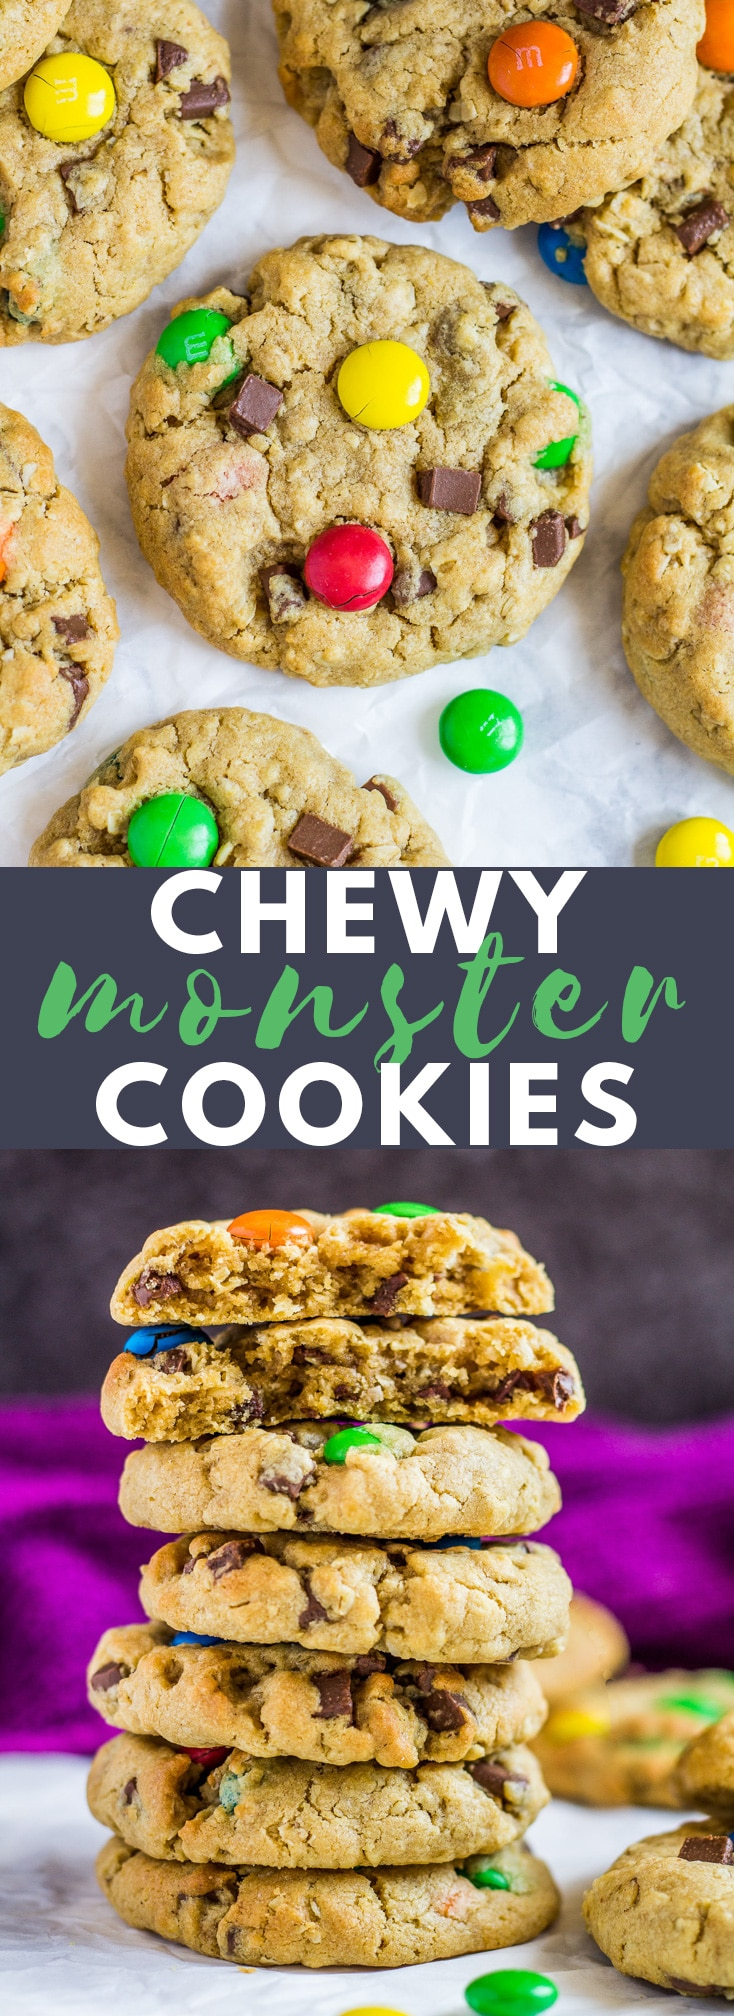 Soft and Chewy Monster Cookies - Deliciously thick, soft and chewy peanut butter cookies stuffed full of oats, M&Ms, and chocolate chips! #peanutbutter #monstercookies #cookierecipes